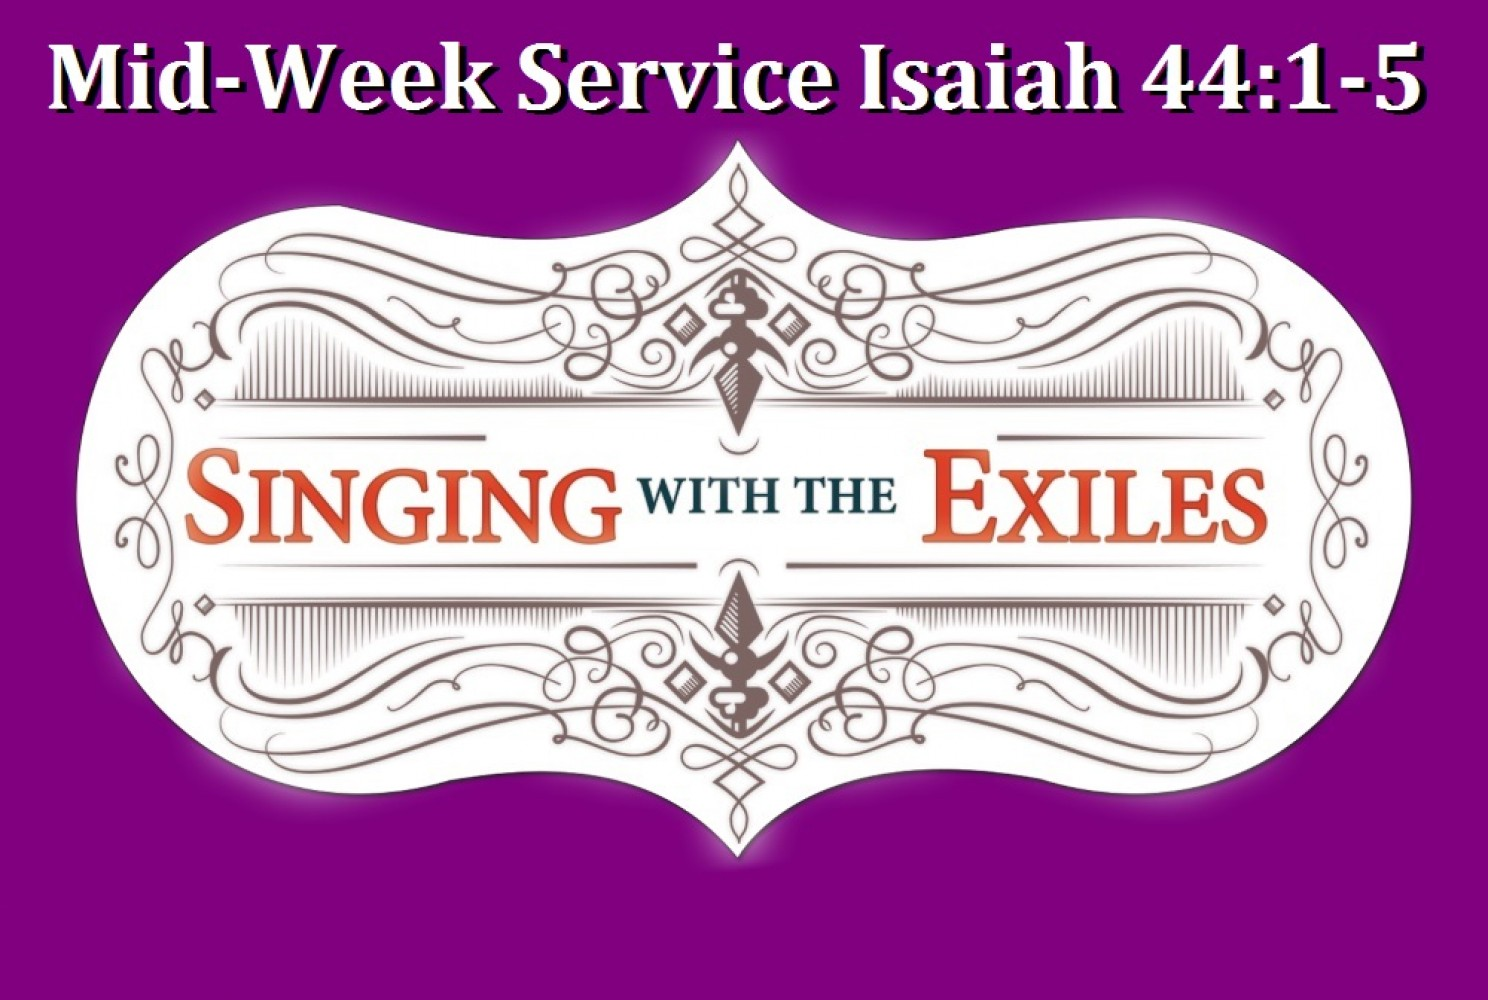 Lenten Exchange Mid-Week Isaiah 44:1-5 - Pastor Jim Chimirri-Russell